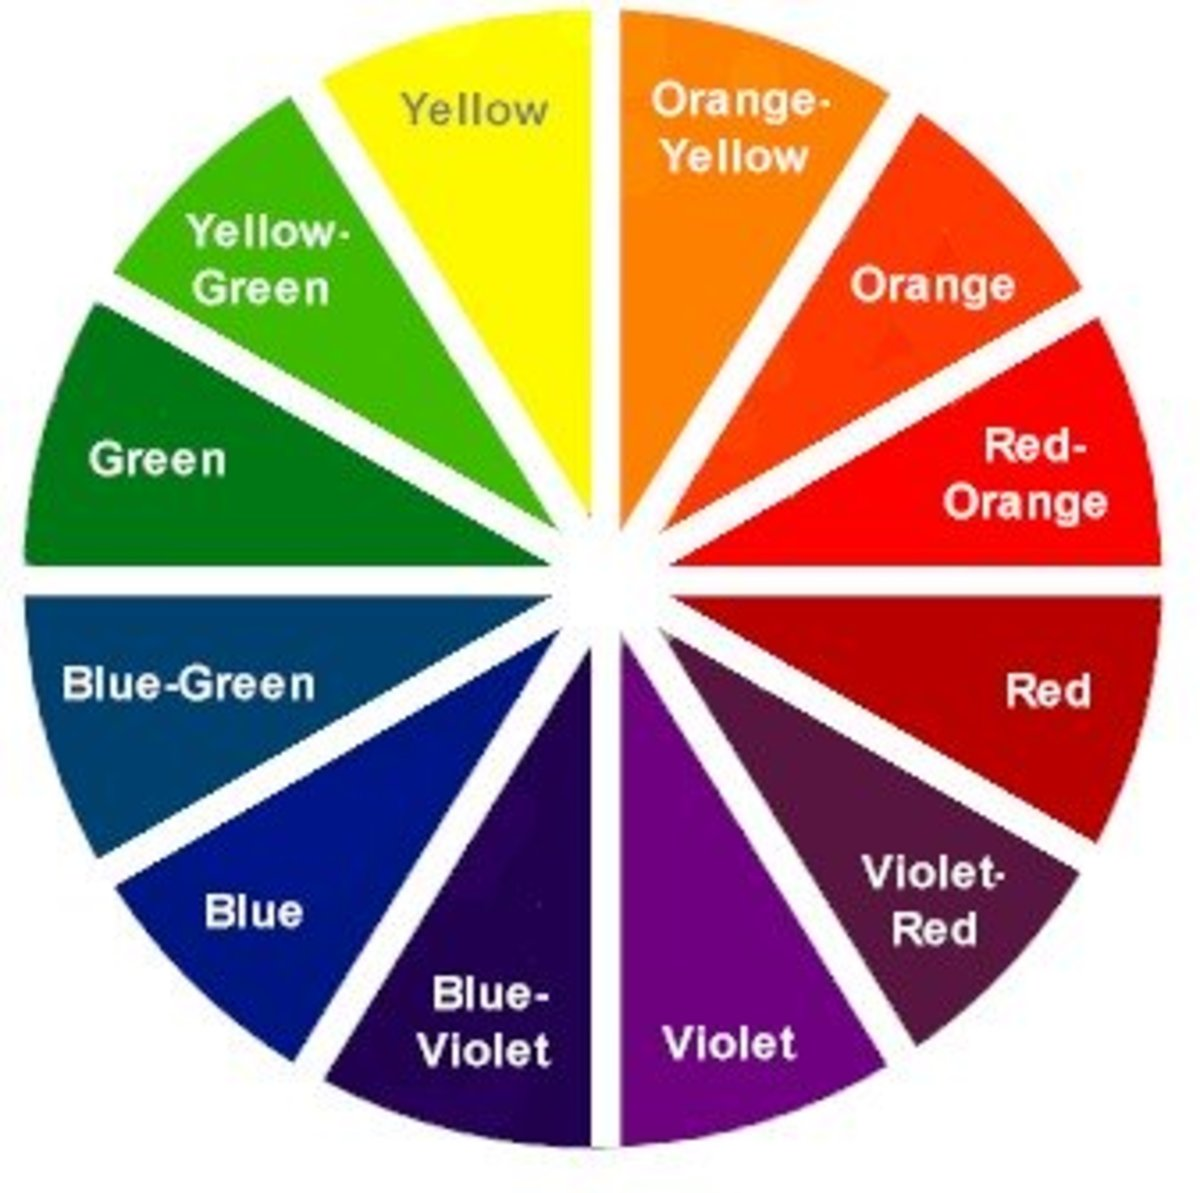 color meanings: what color are you? personality and symbolism